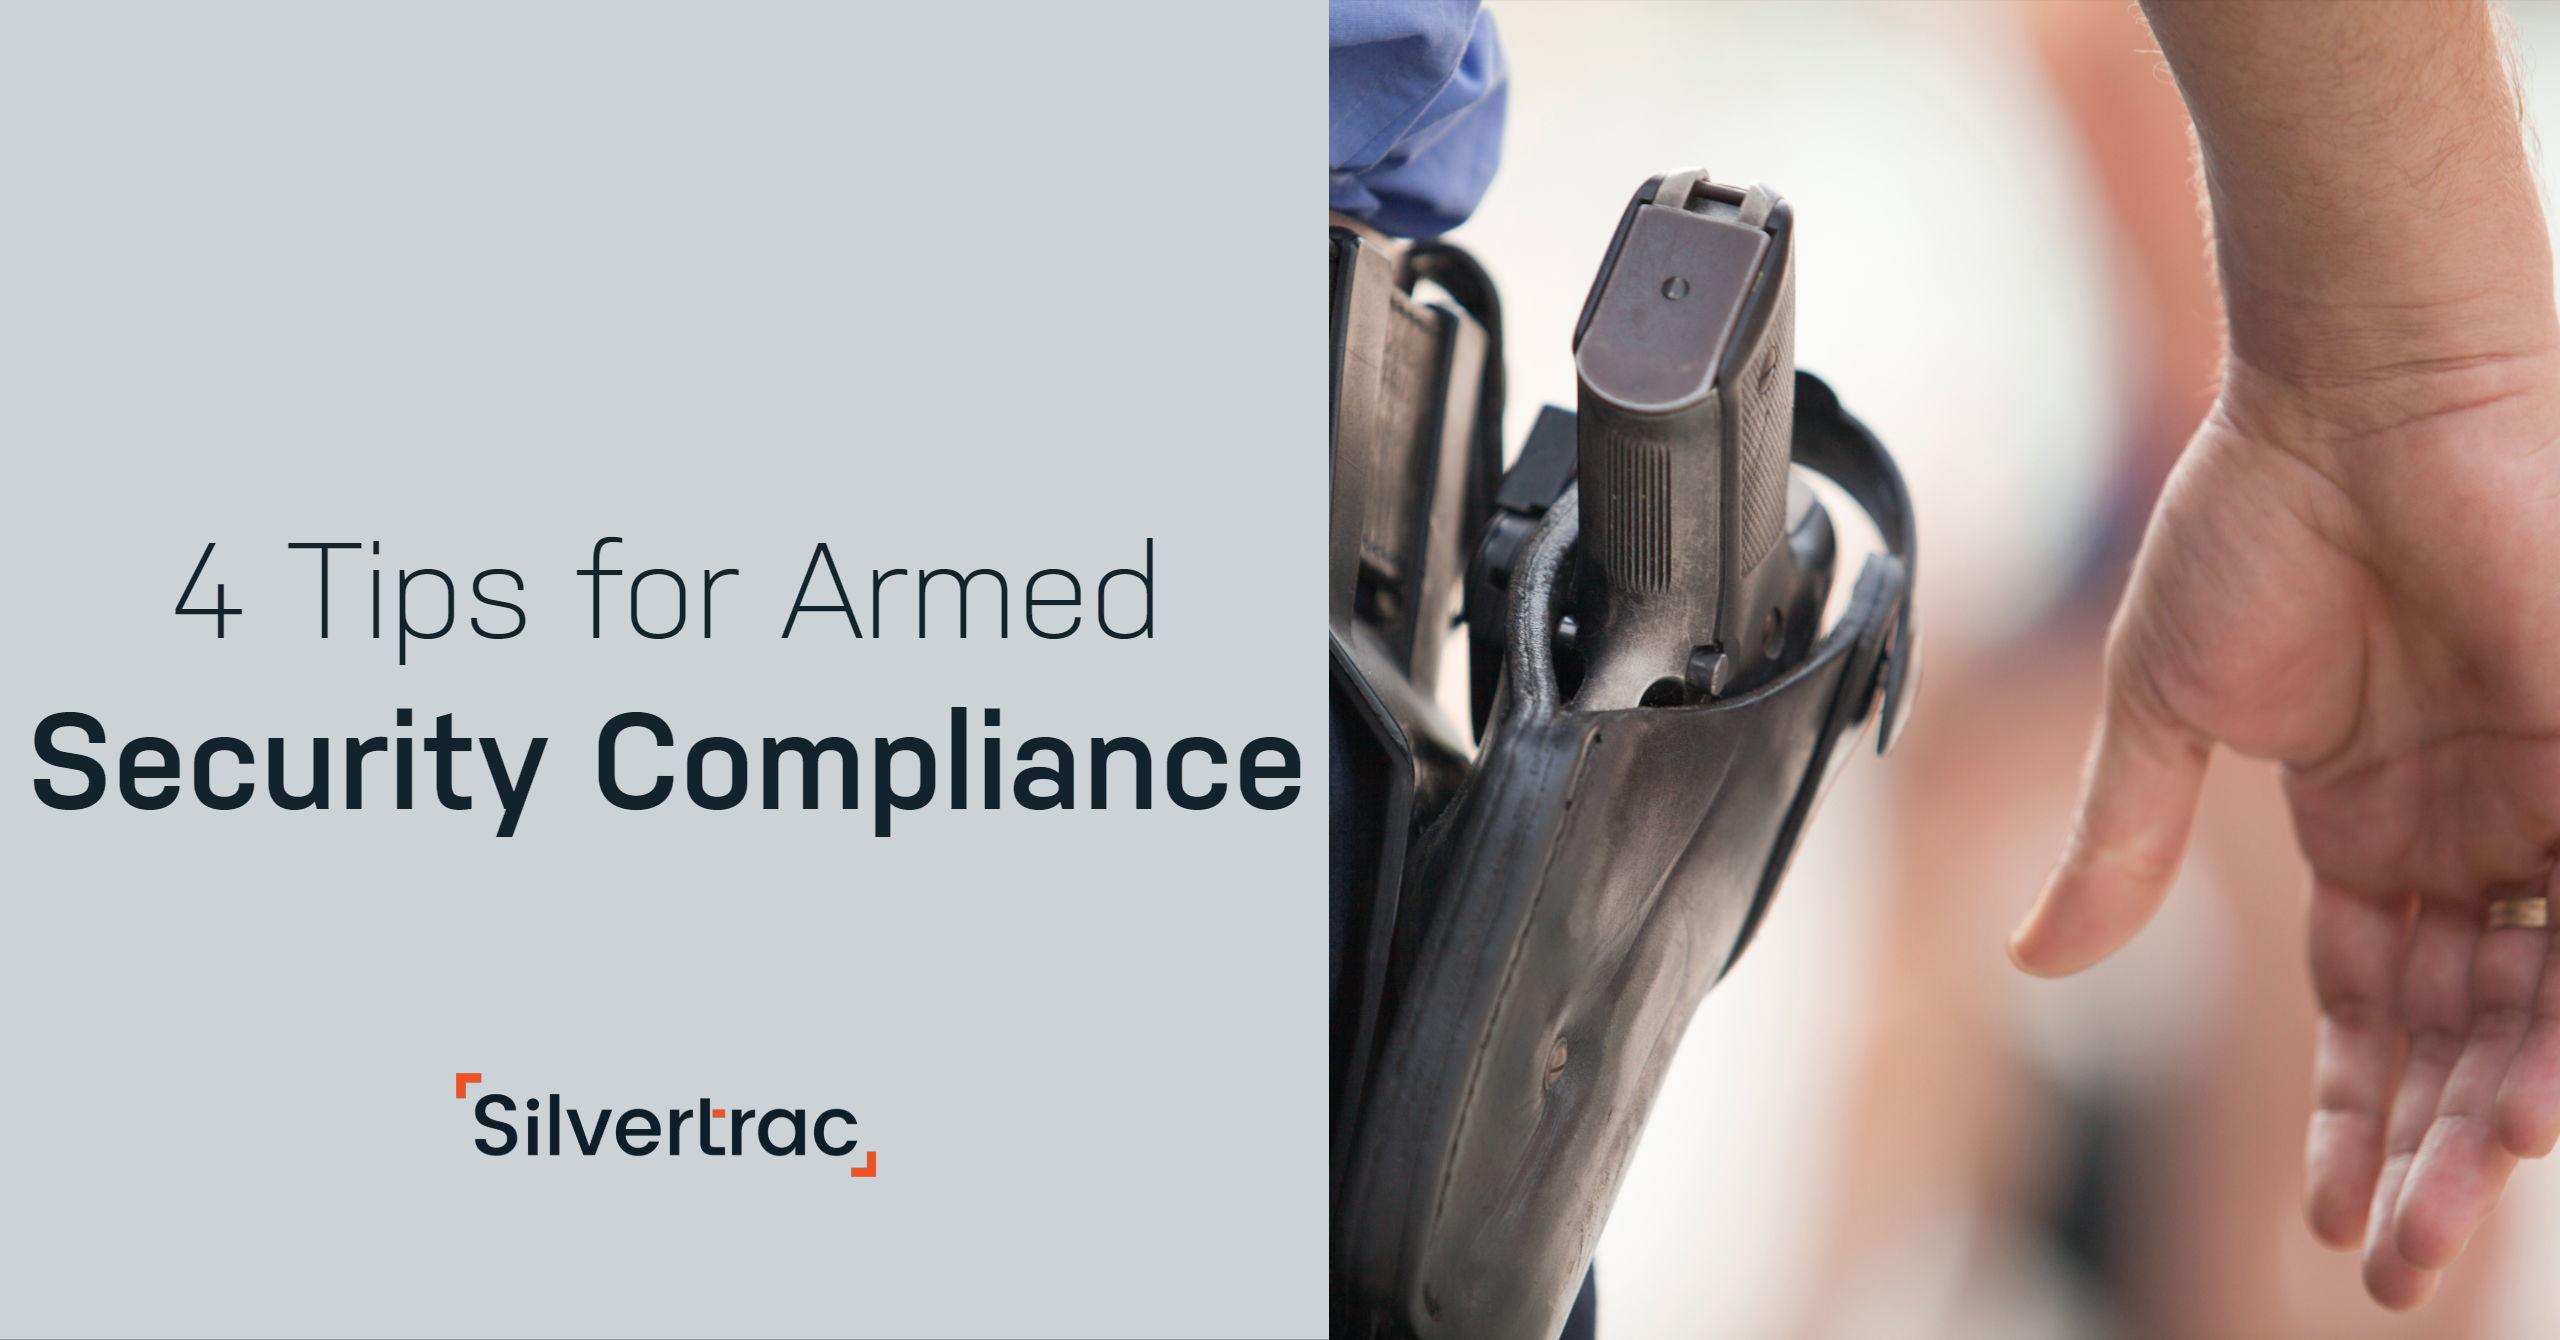 4 Tips for Armed Security Compliance